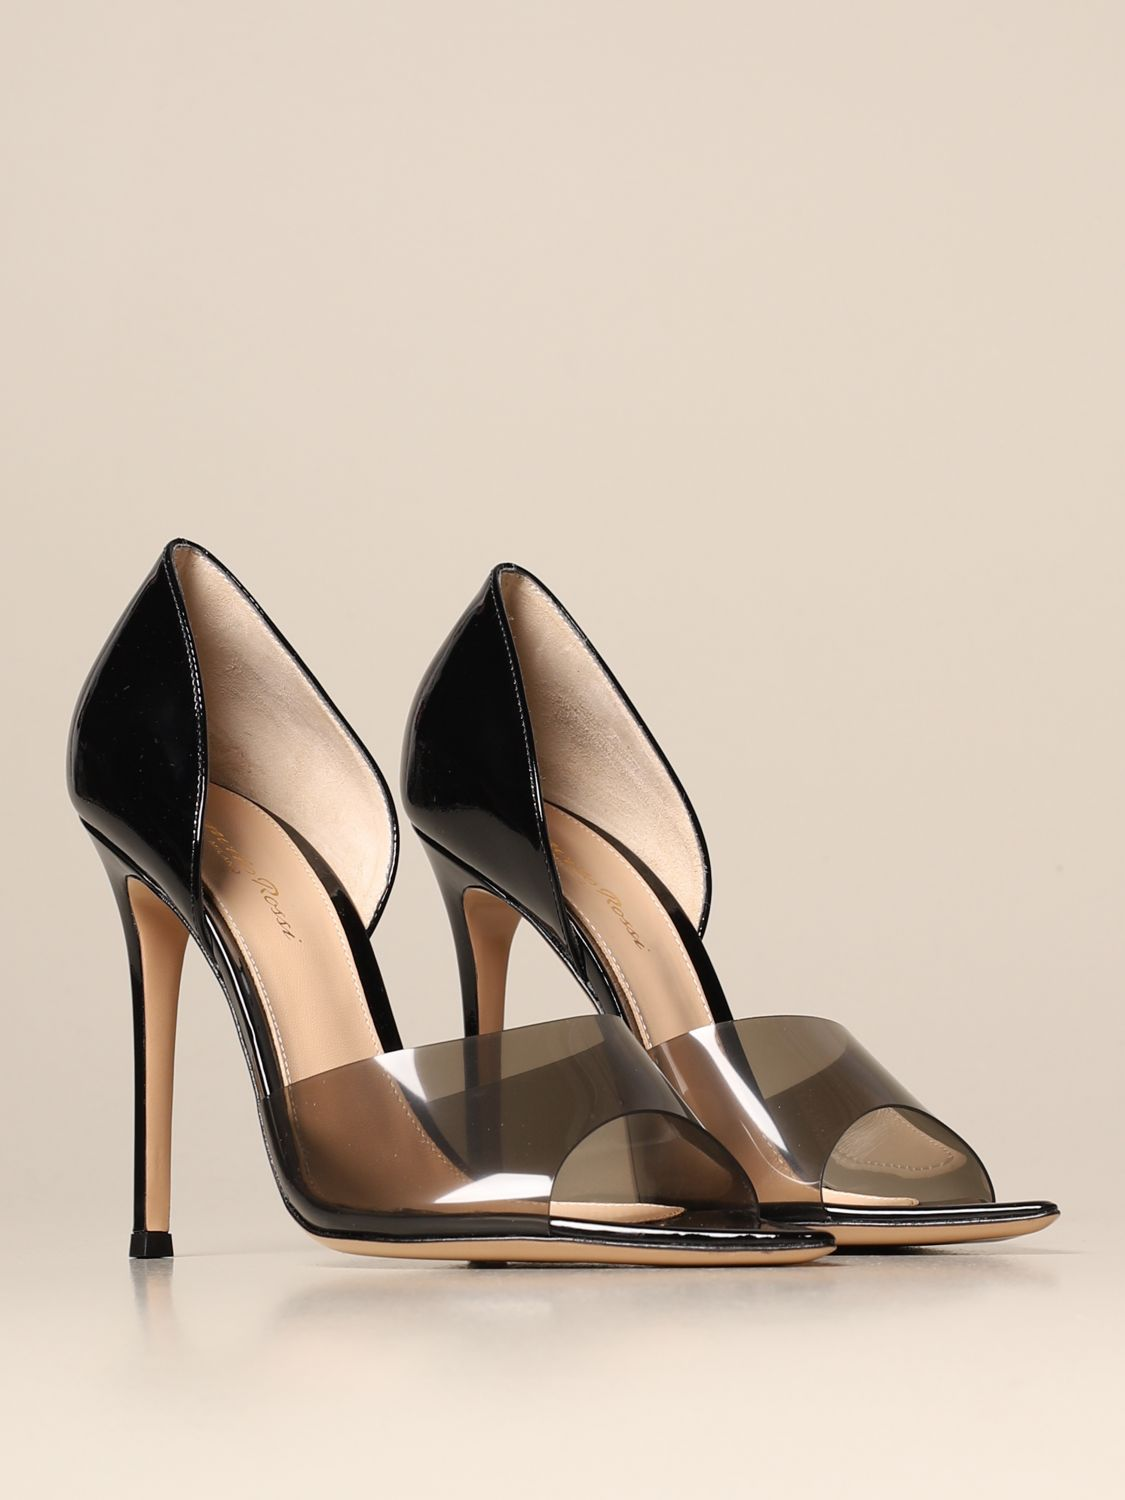 Chaussures à talons Gianvito Rossi: Chaussures à talons femme Gianvito Rossi noir 2